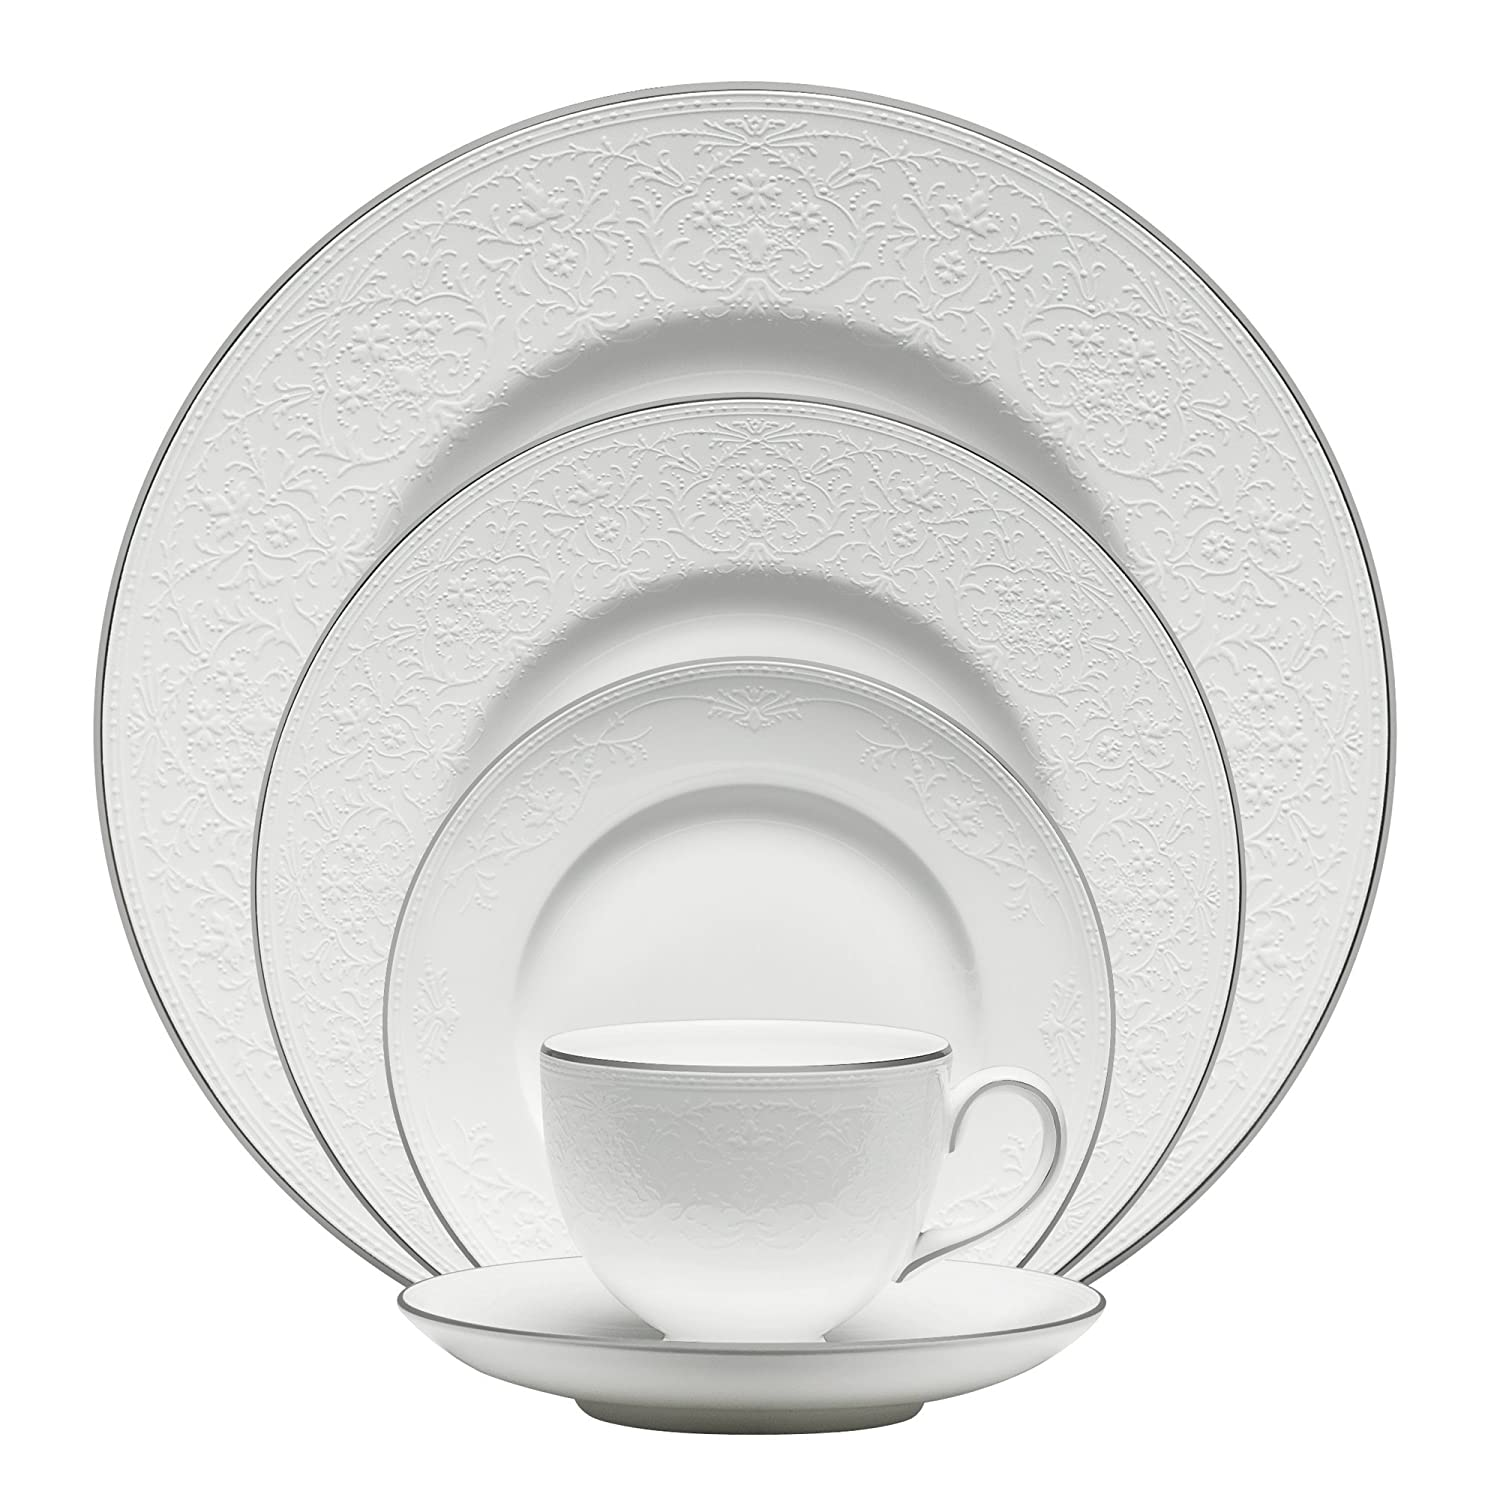 Christmas Tablescape Décor - Wedgwood white English lace with platinum rim 5-pc place setting